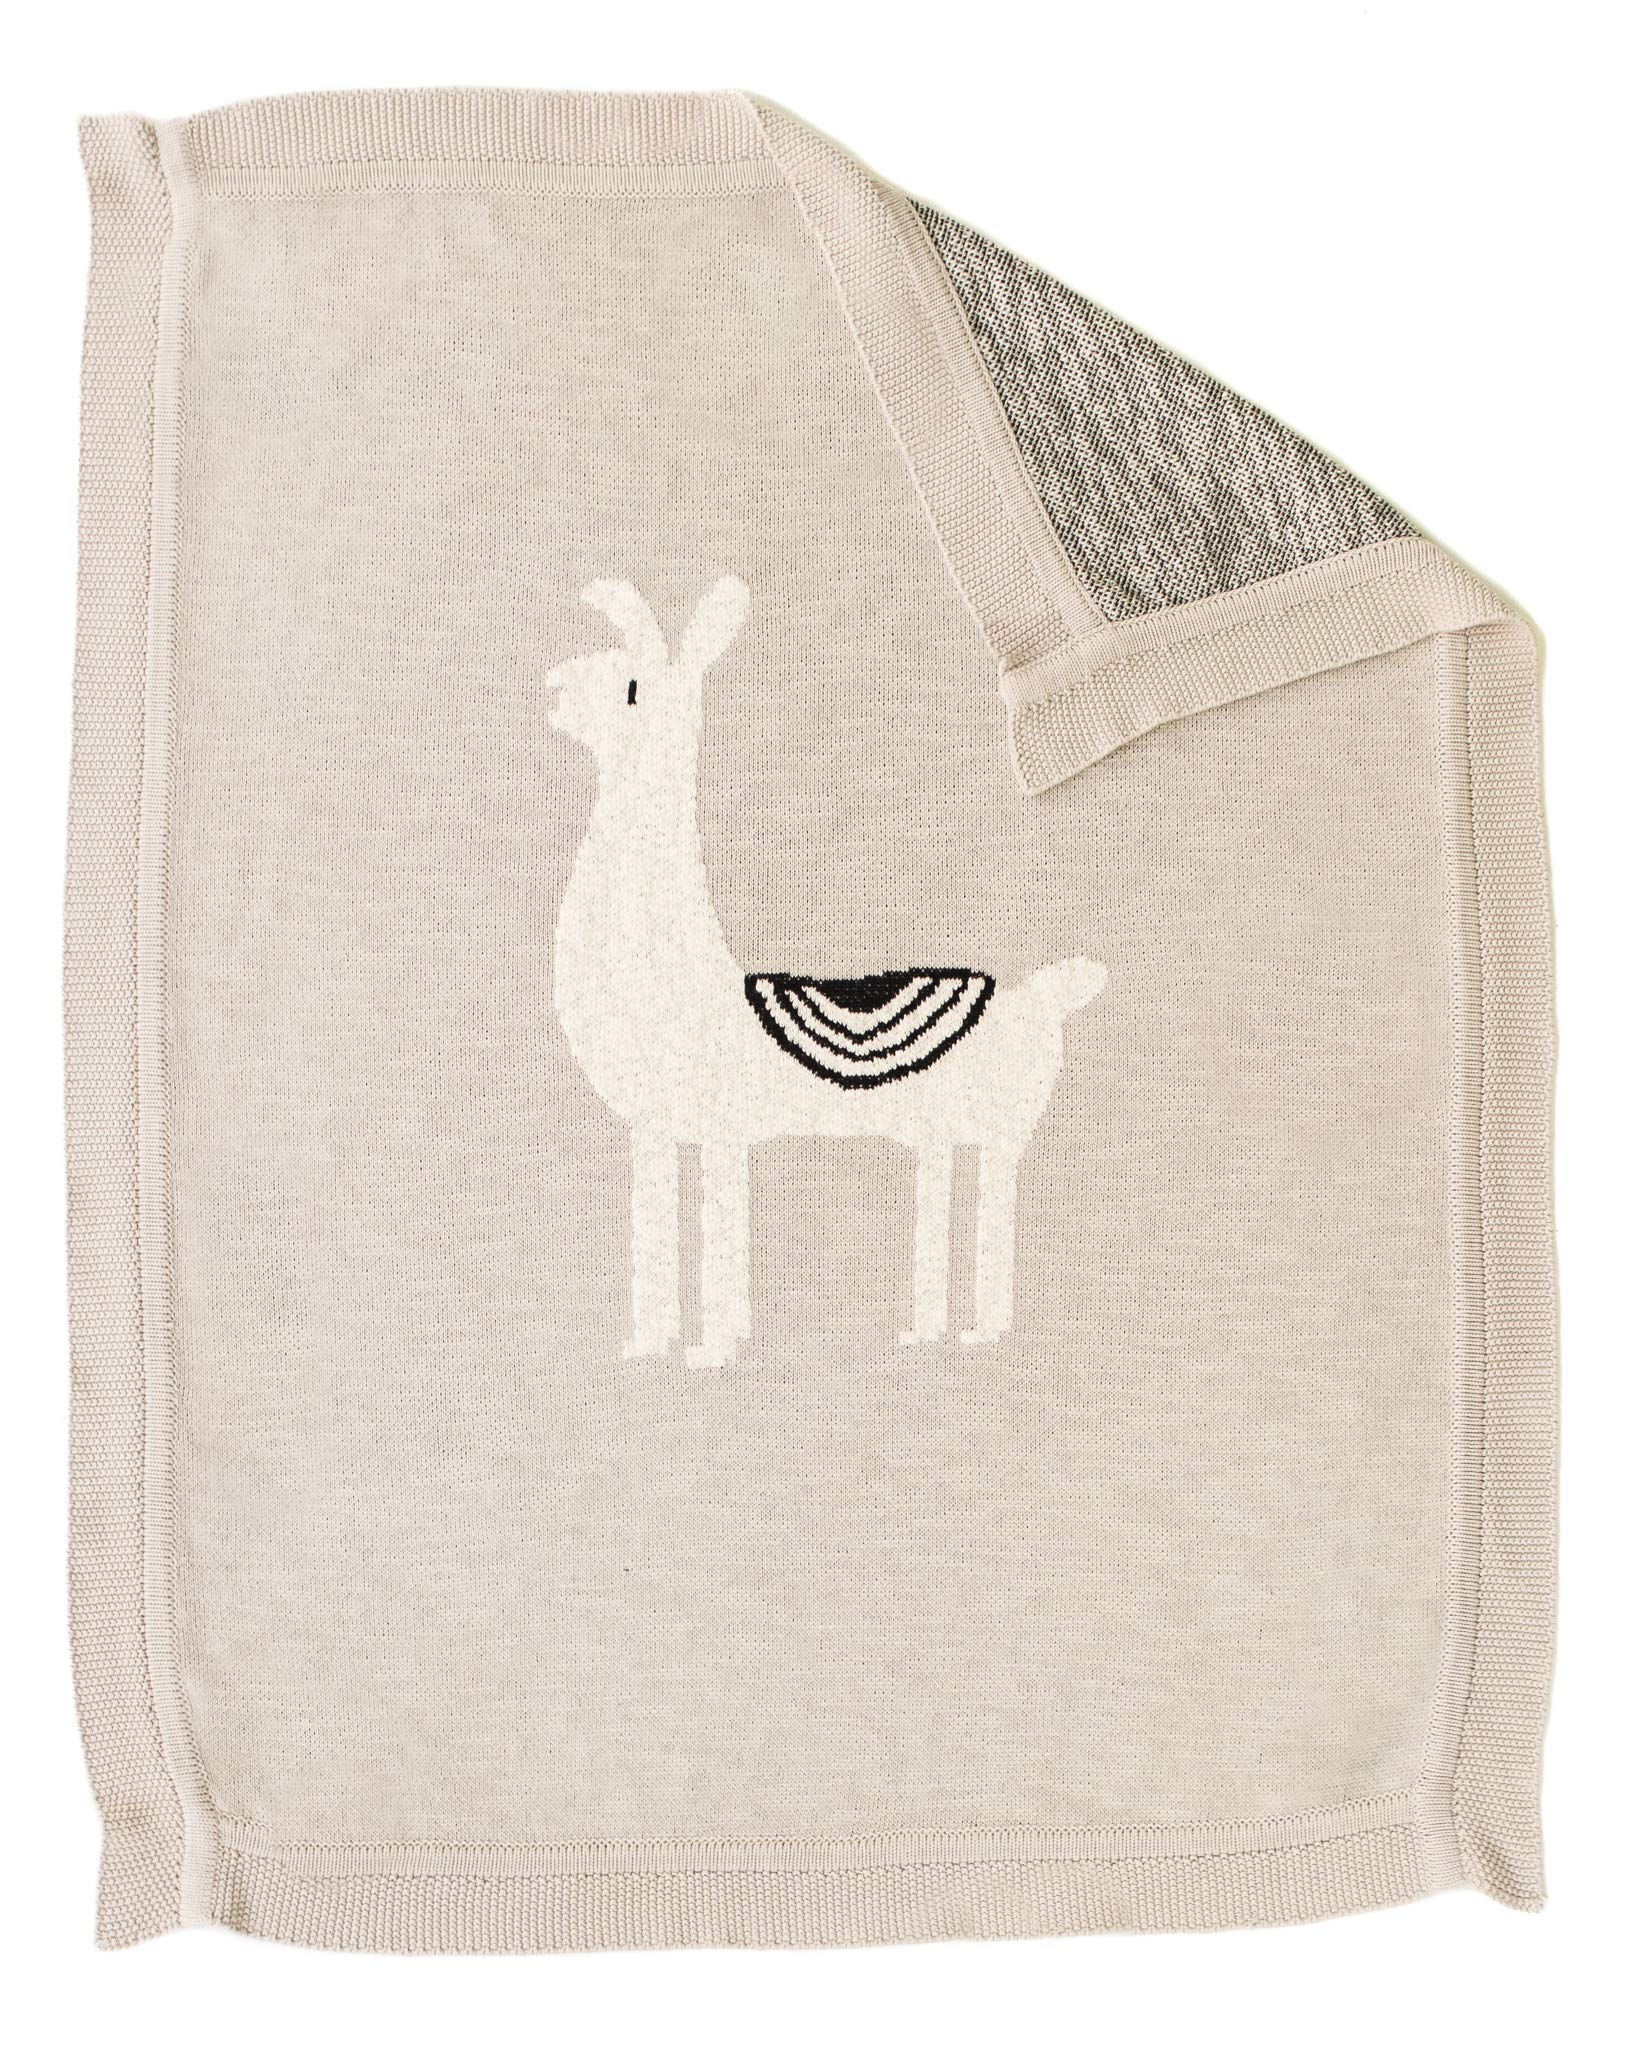 Linen Perch Luxury Llama Nursery Baby Blanket - Newborn Baby Shower Gift for Boy or Girl in Deluxe Gift Box - Unisex Cotton Llama Baby or Toddler Décor Blanket - 40 inches x 32 inches (Natural)